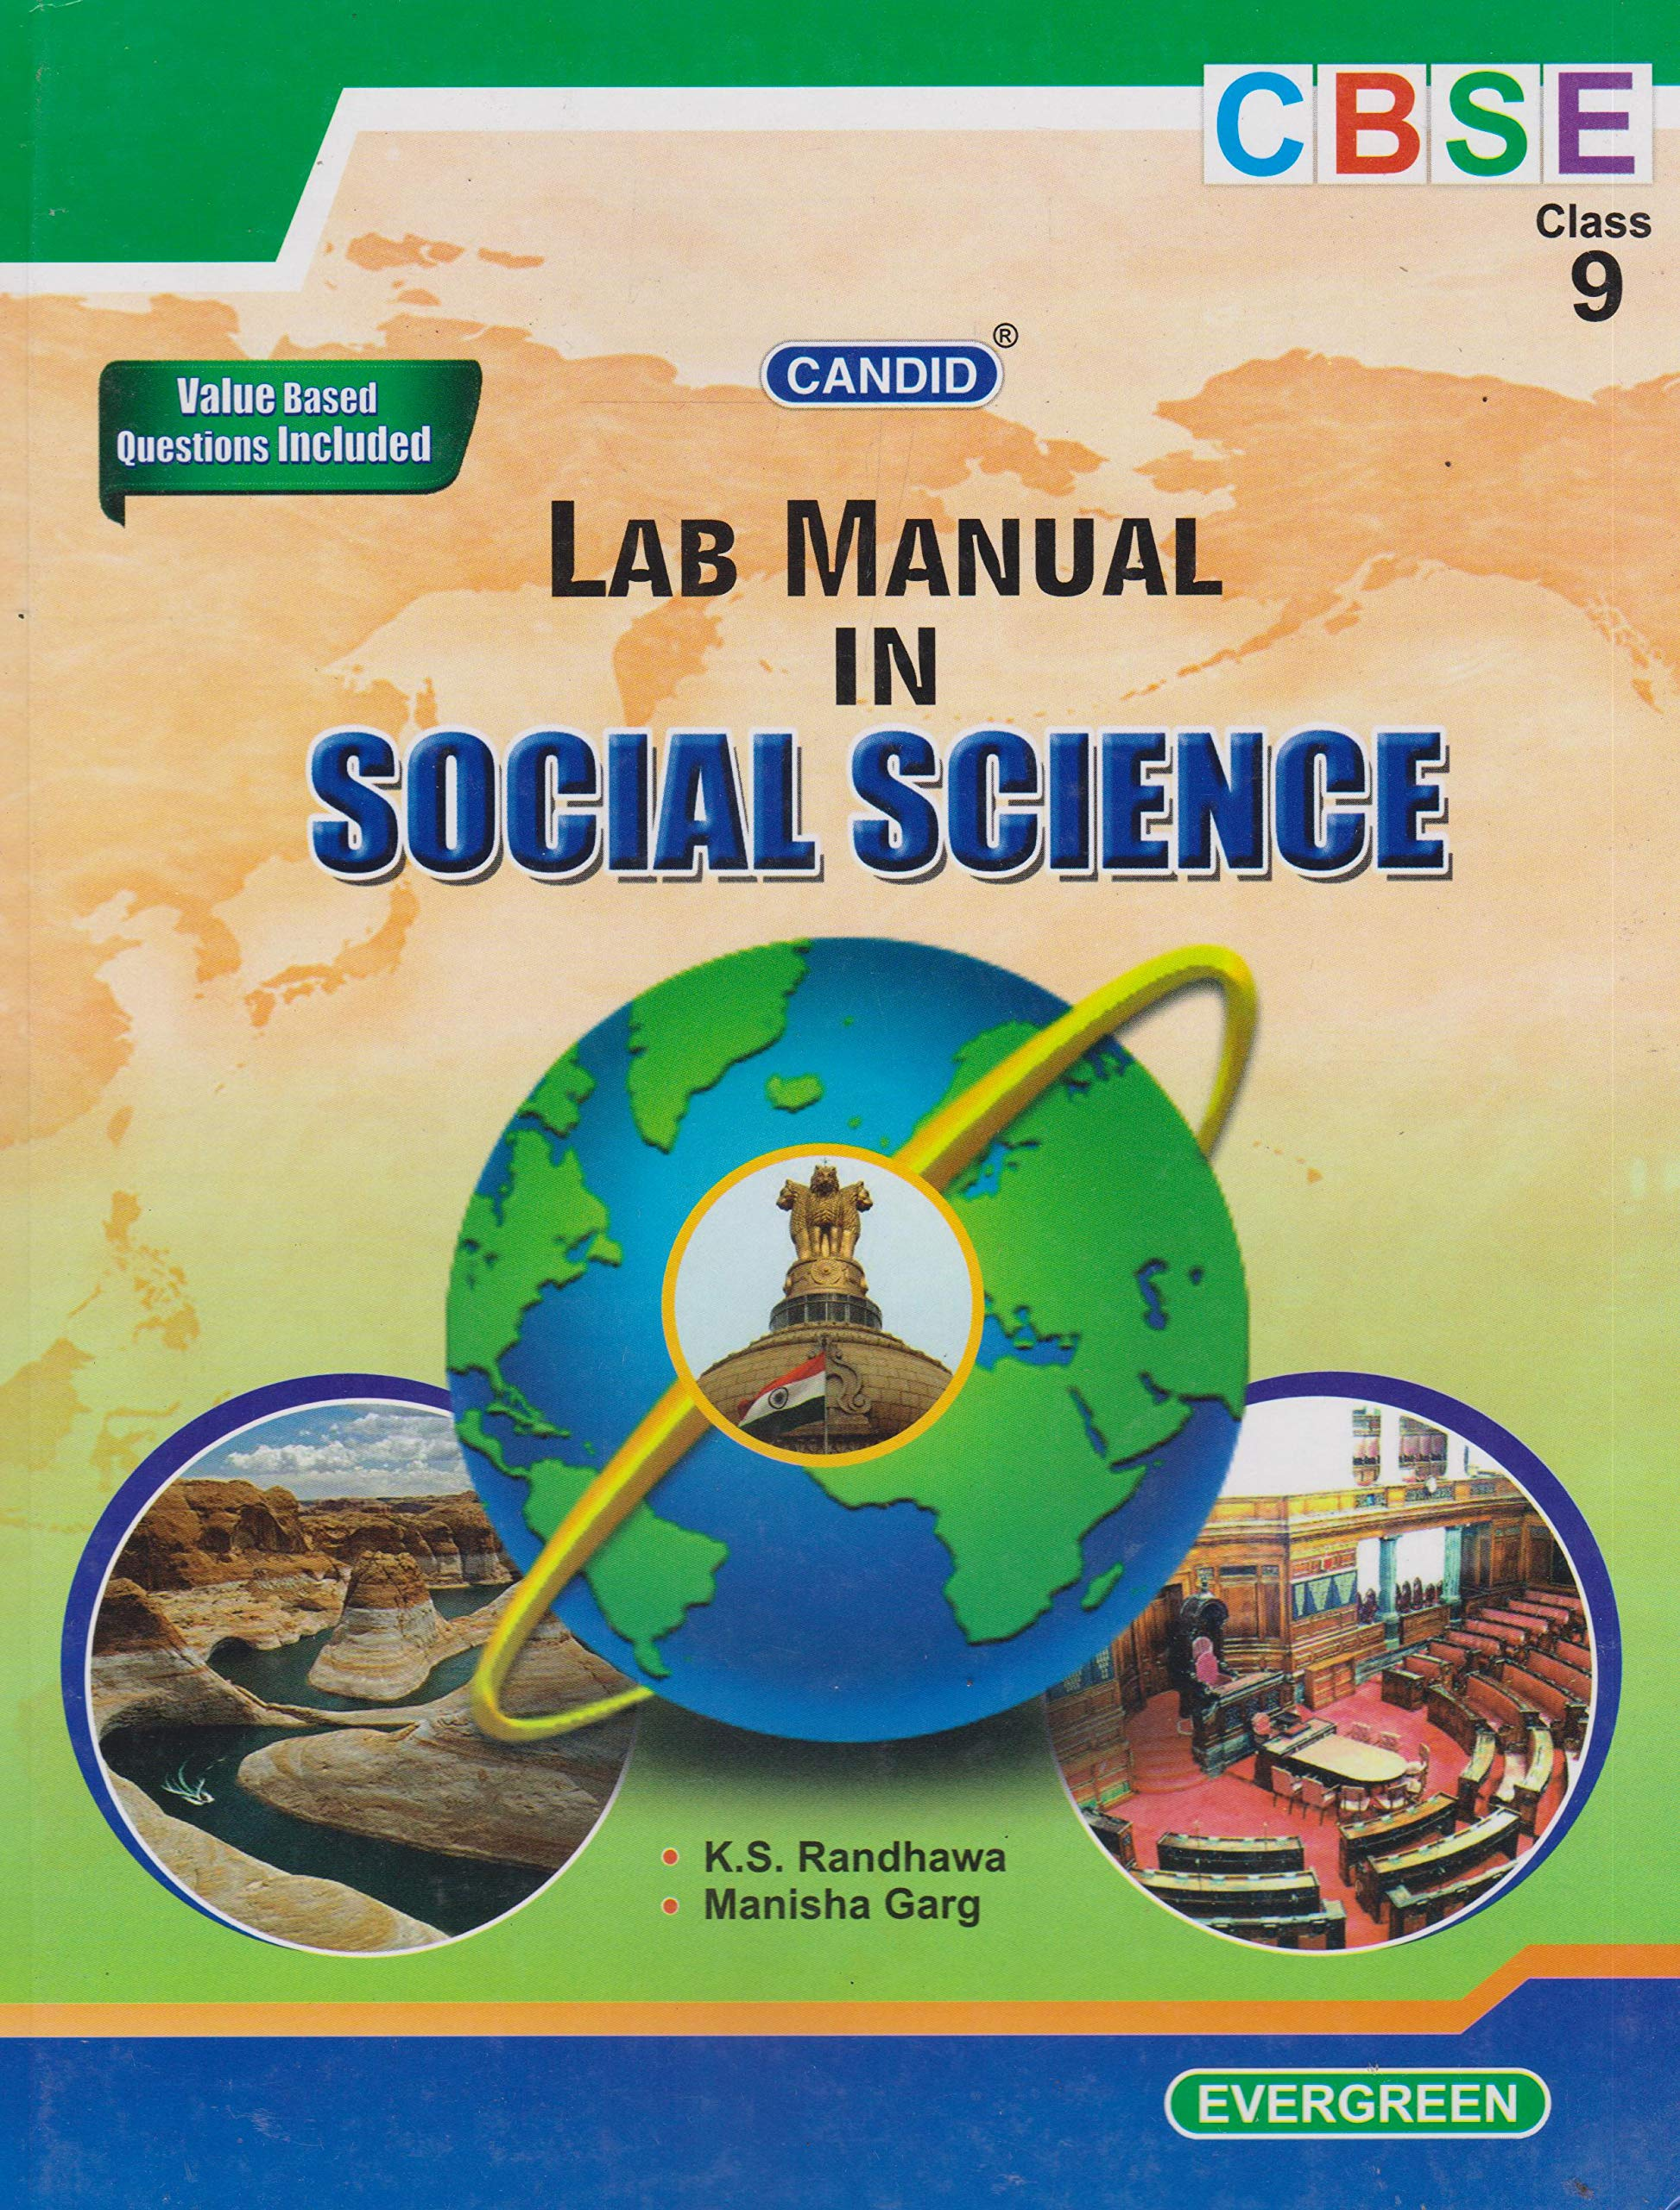 Candid Lab Manual in Social Science Class 9: Amazon.in: K S Randhawa,  Manisha Garg: Books